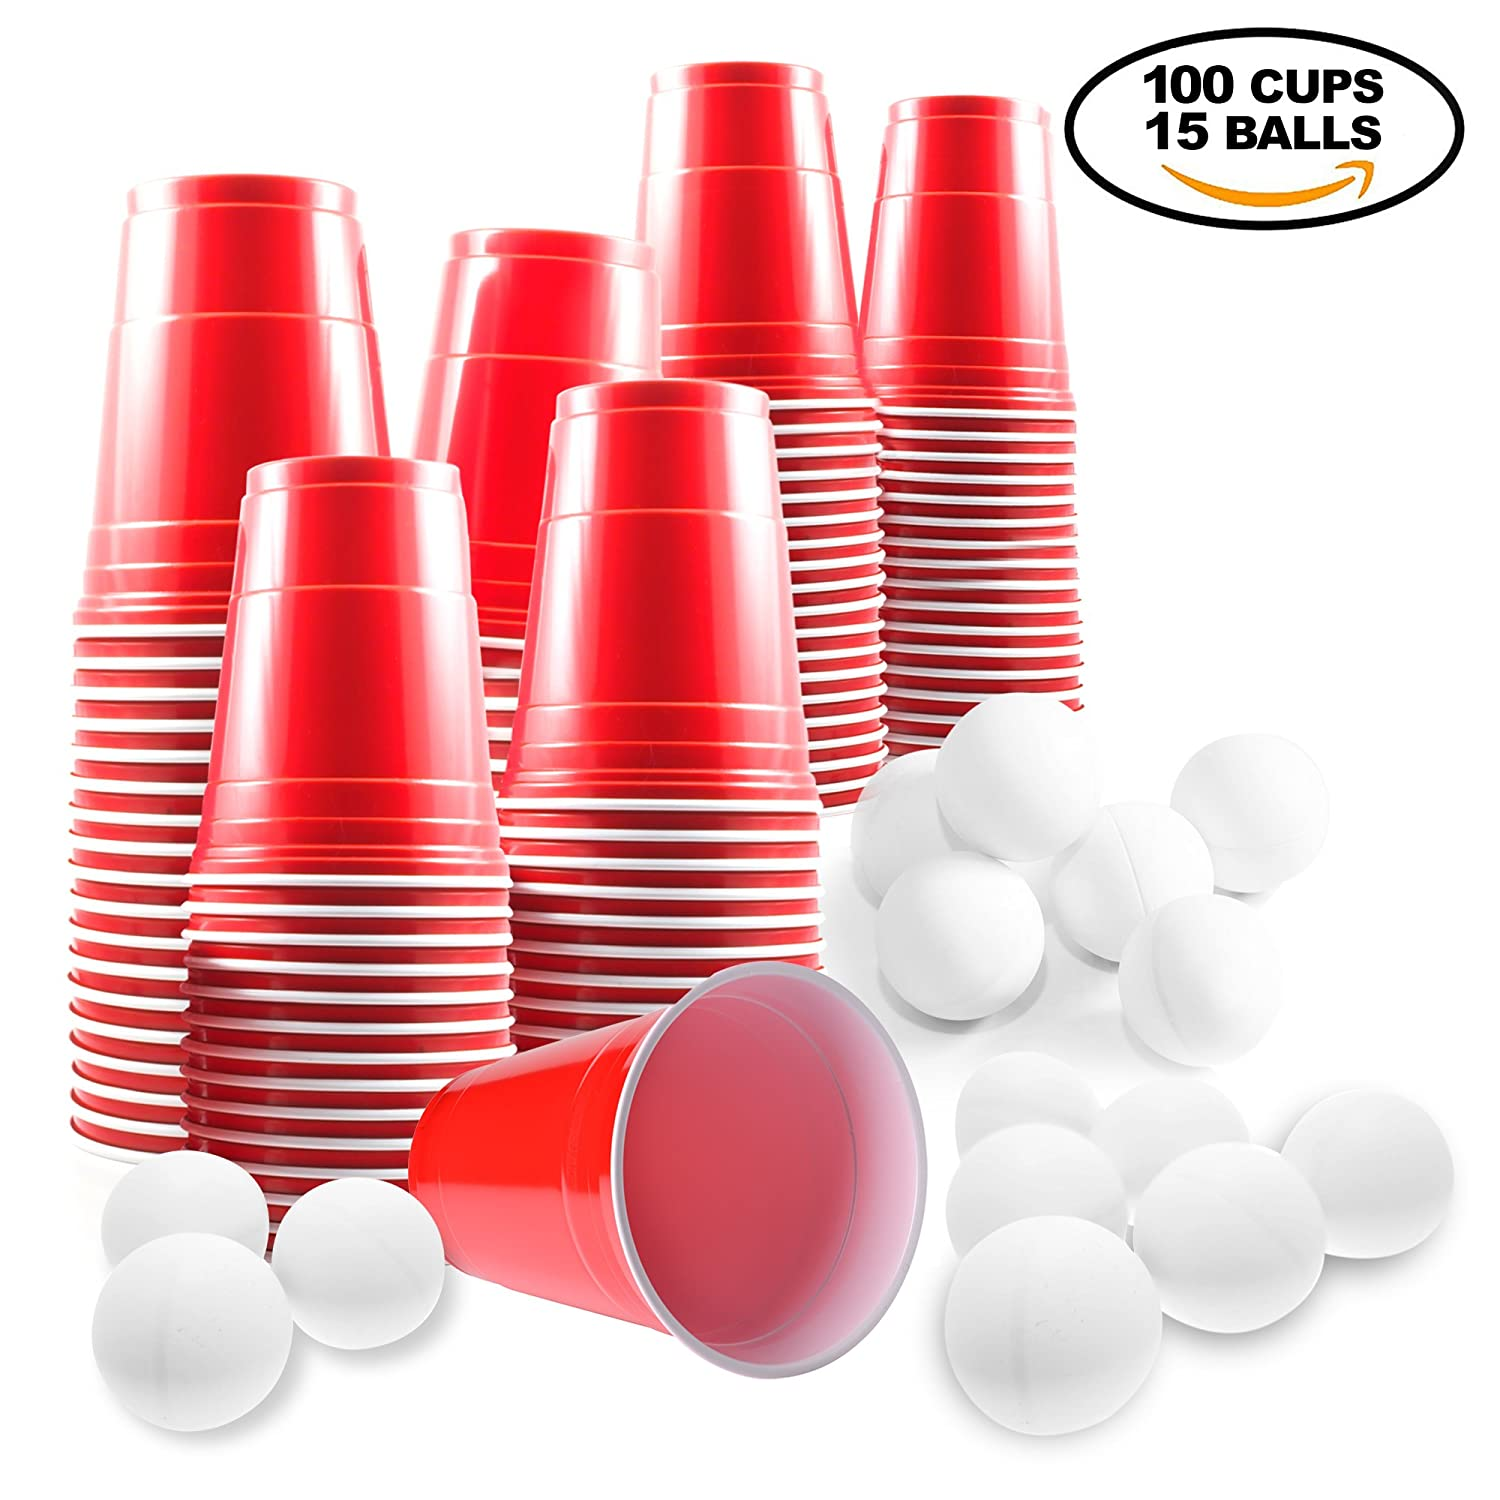 Iconic Red American Beer Pong Set – 100 Cups and 15 Balls – Perfect for Christmas Party Fun and Games The Twiddlers .